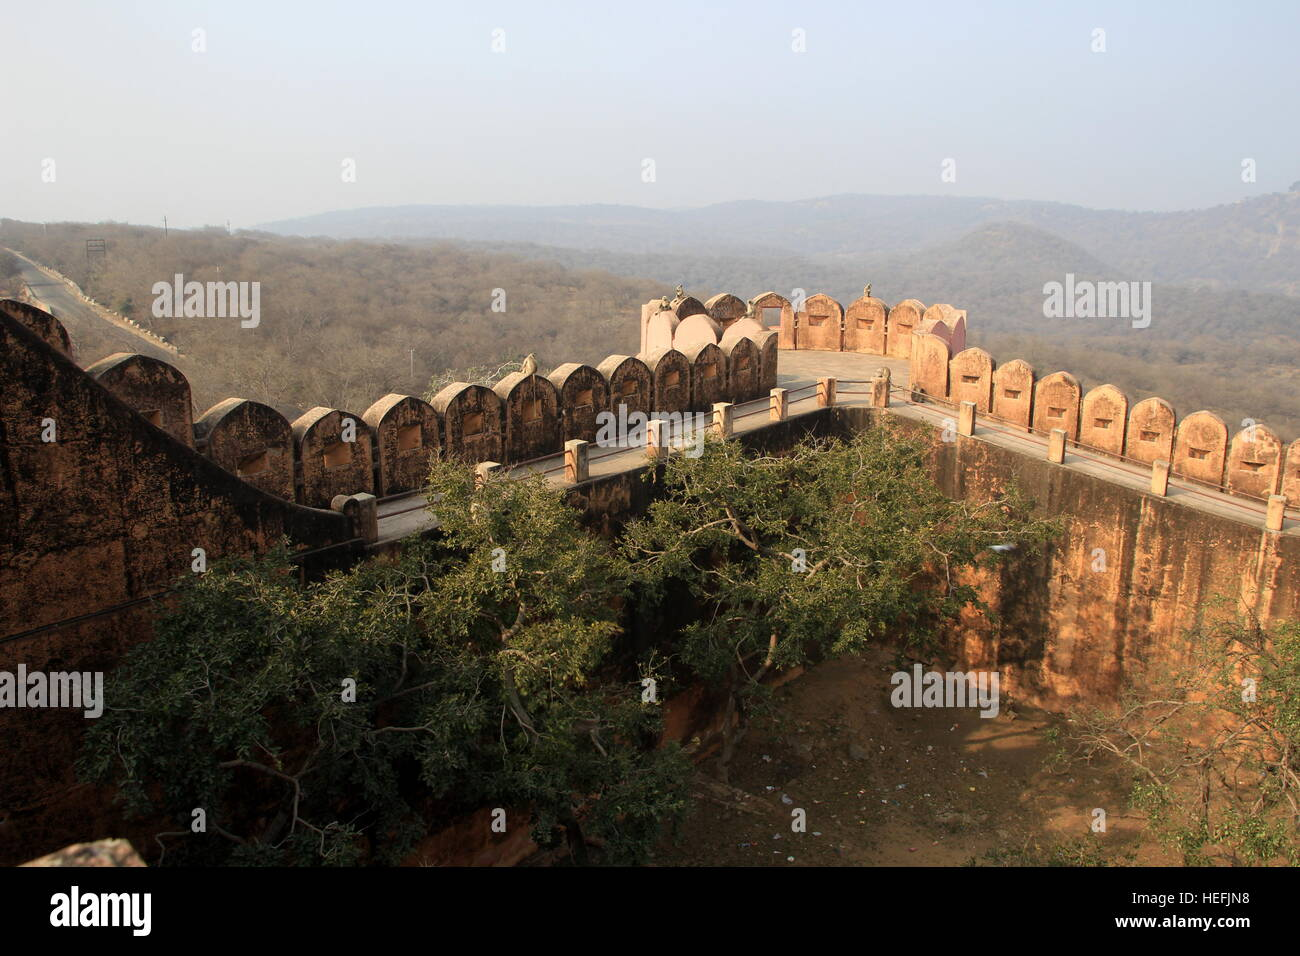 Parapet and walkway along the edge of fort at Jaigarh Palace, Jaipur, Rajasthan, India, Asia - Stock Image